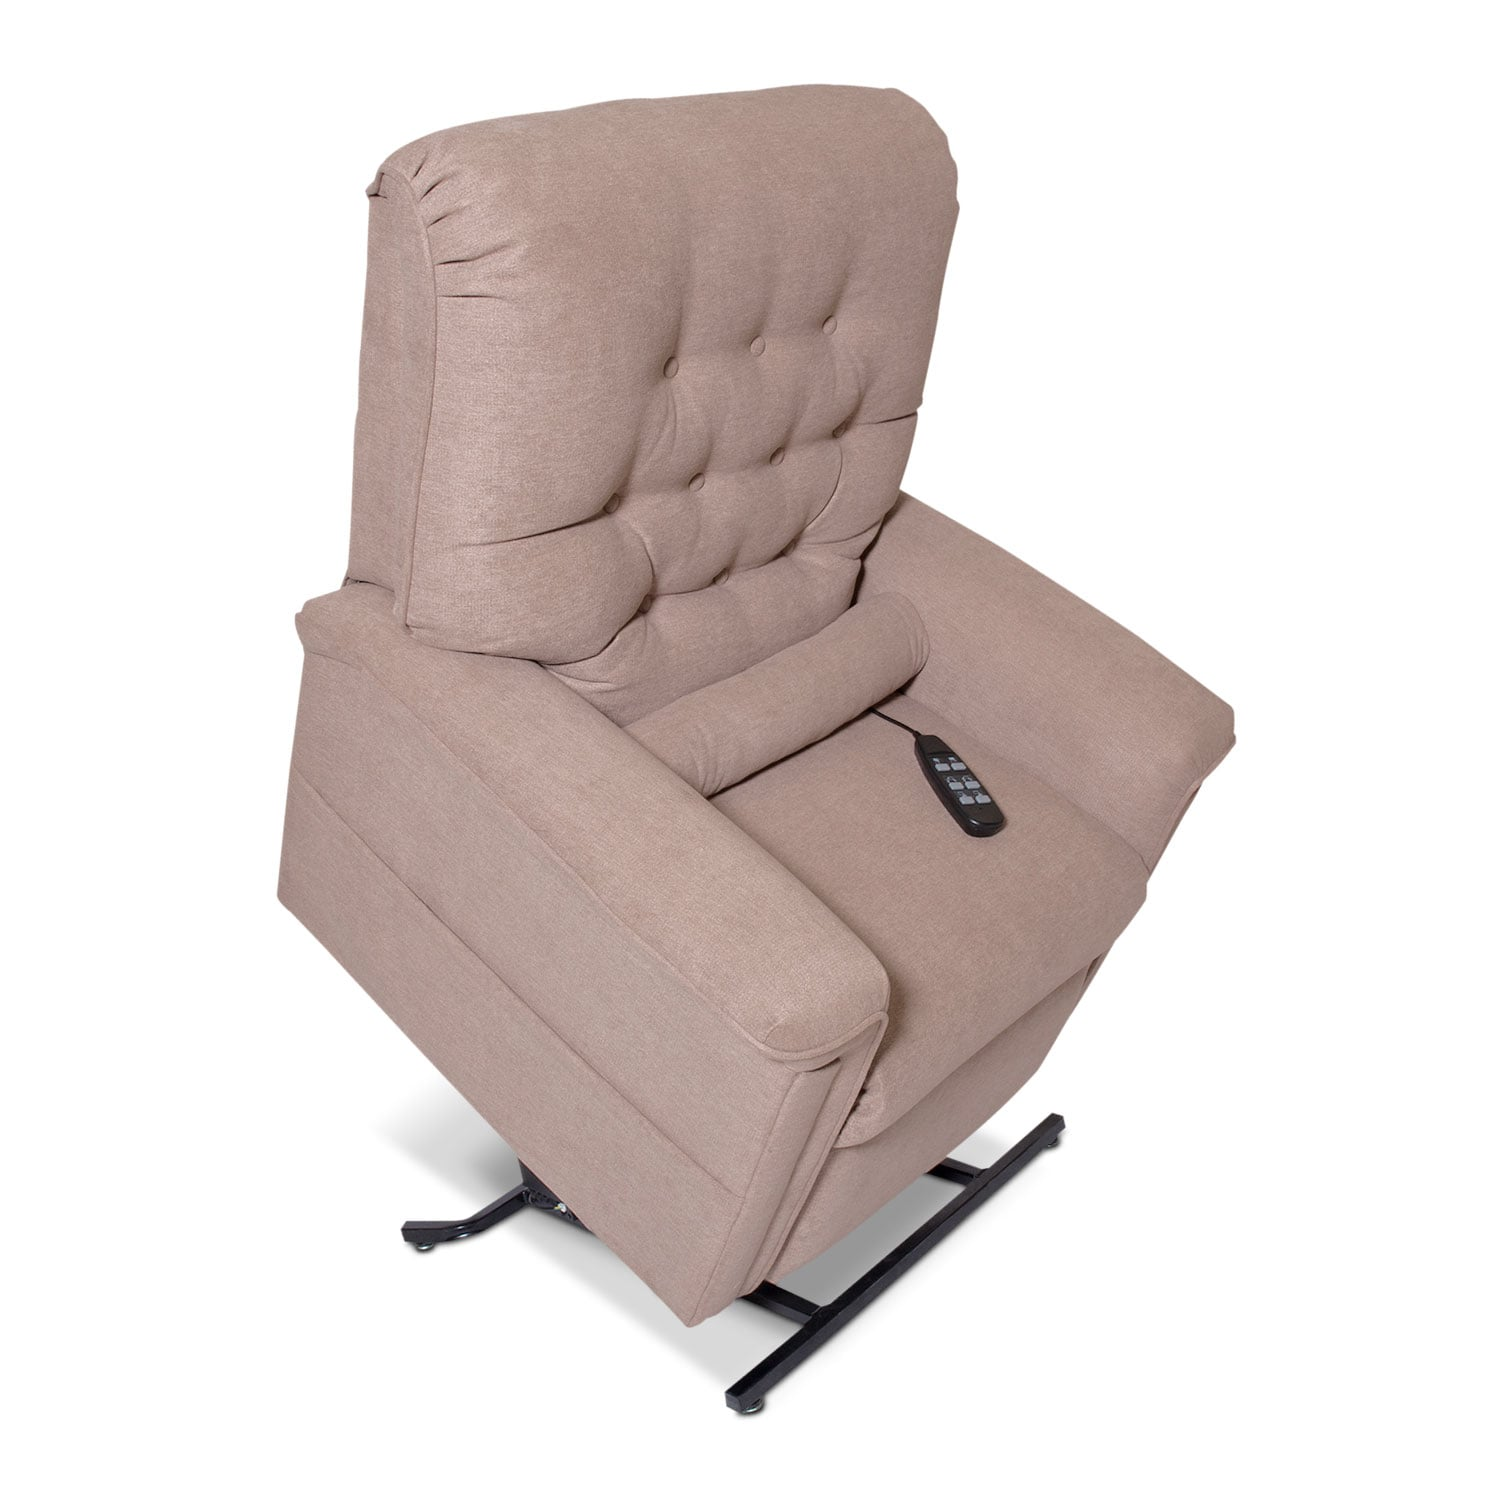 Living Room Furniture - Marcy Lift Chair - Beige